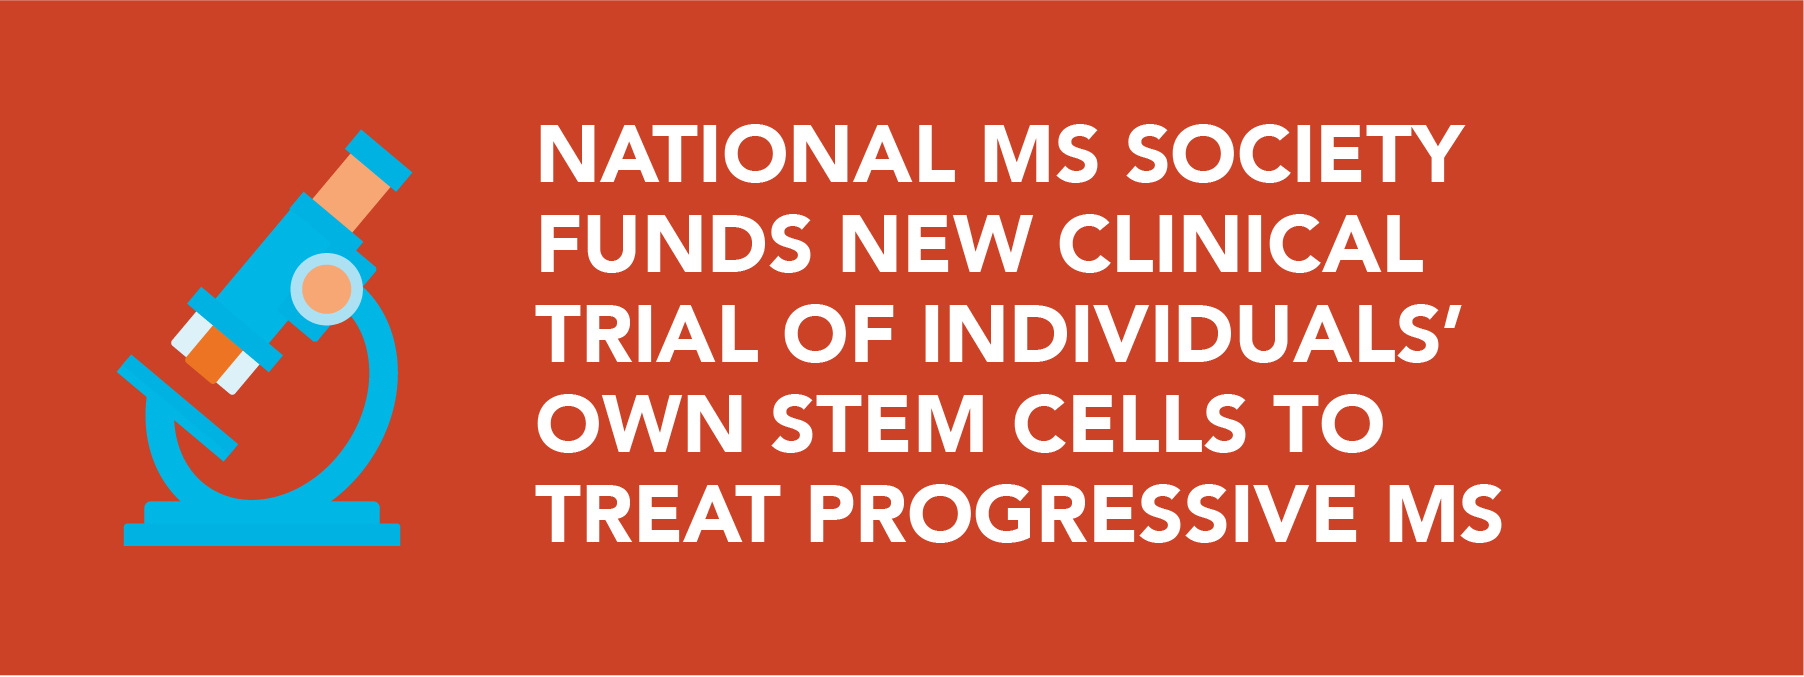 National MS Society funds new clinical trial of individuals' own stem cells to treat progressive MS